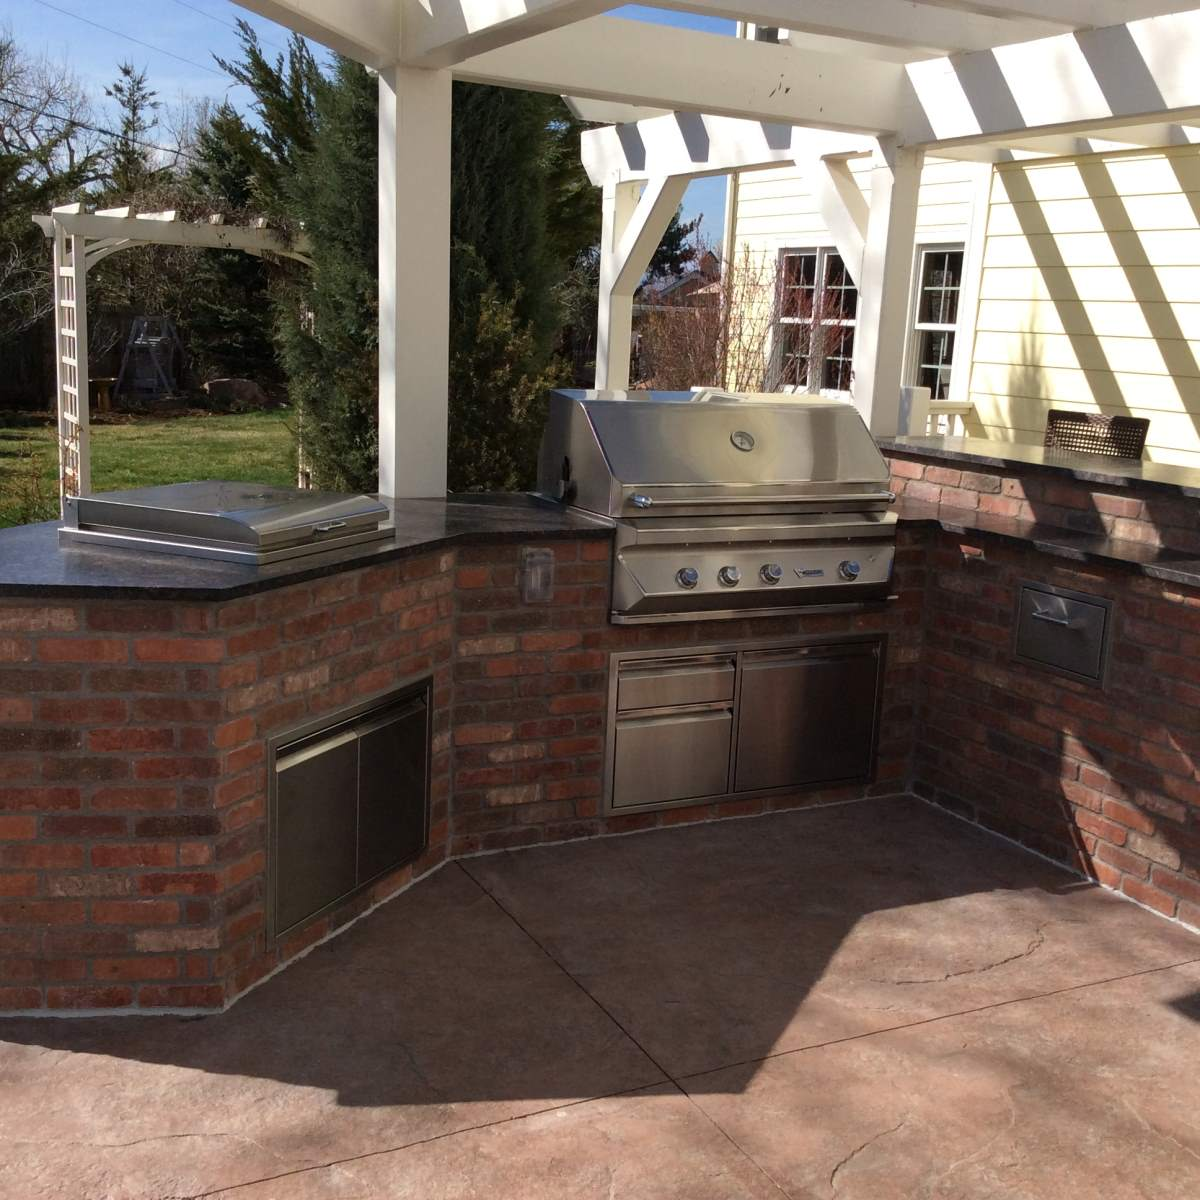 Brick Outdoor Kitchen: Brick Outdoor Kitchen Island In Superior, Co